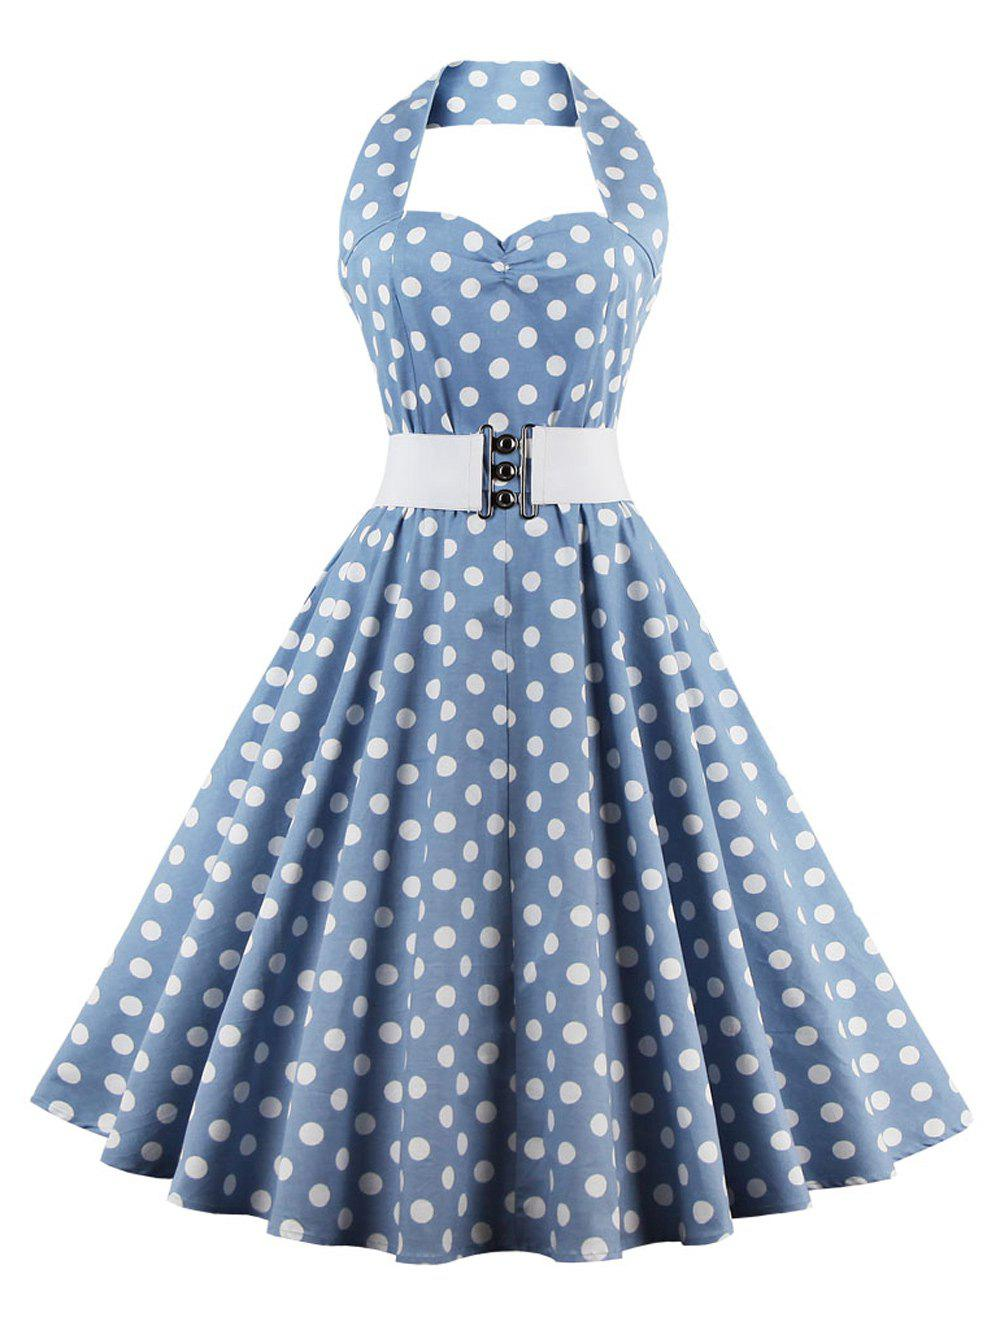 Retro Halter Sweetheart Neck Polka Dot Flare Dress - LIGHT BLUE 4XL